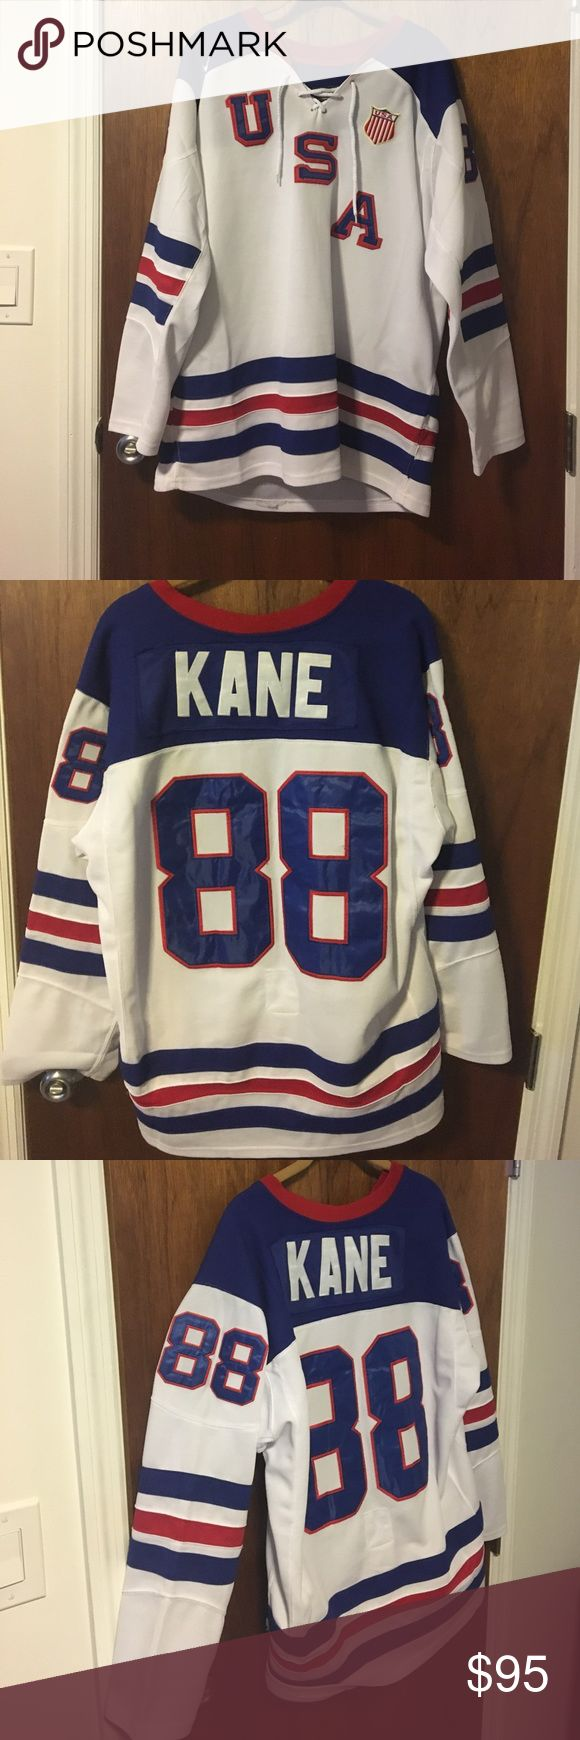 Patrick Kane team USA OLYMPIC HOCKEY JERSEY Patrick Kane team USA hockey jersey Nike Other